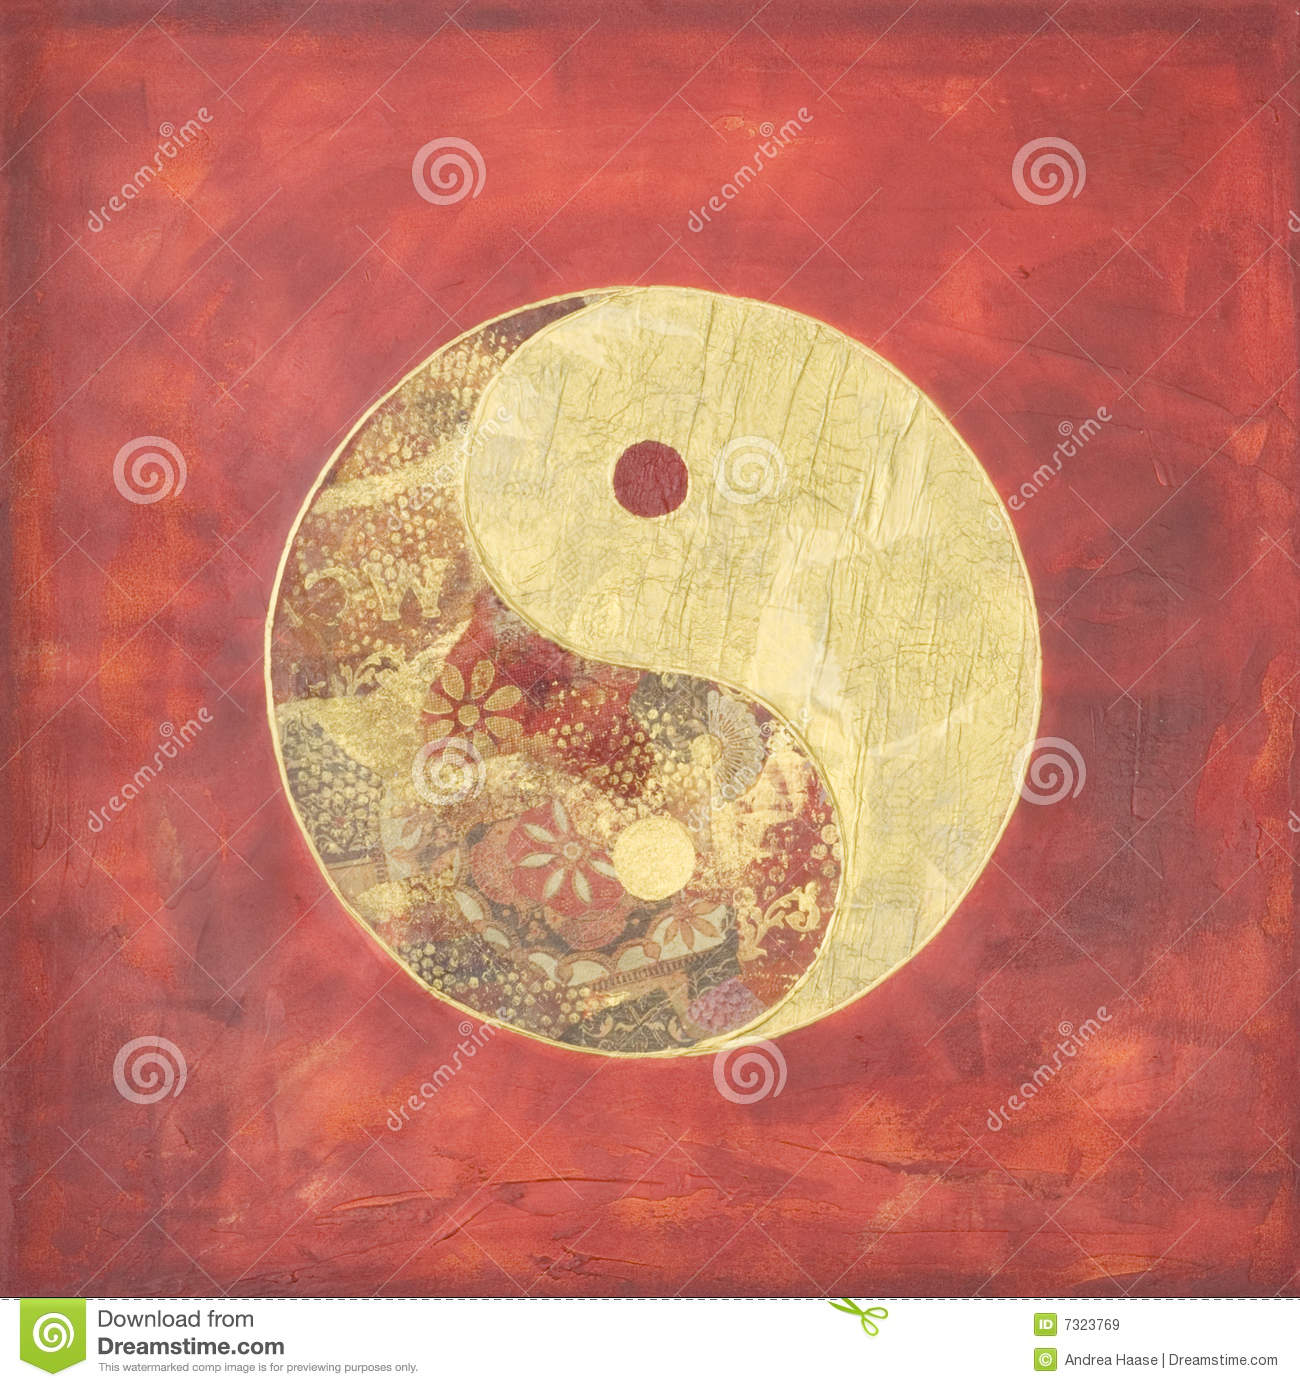 Ying e collage del yang